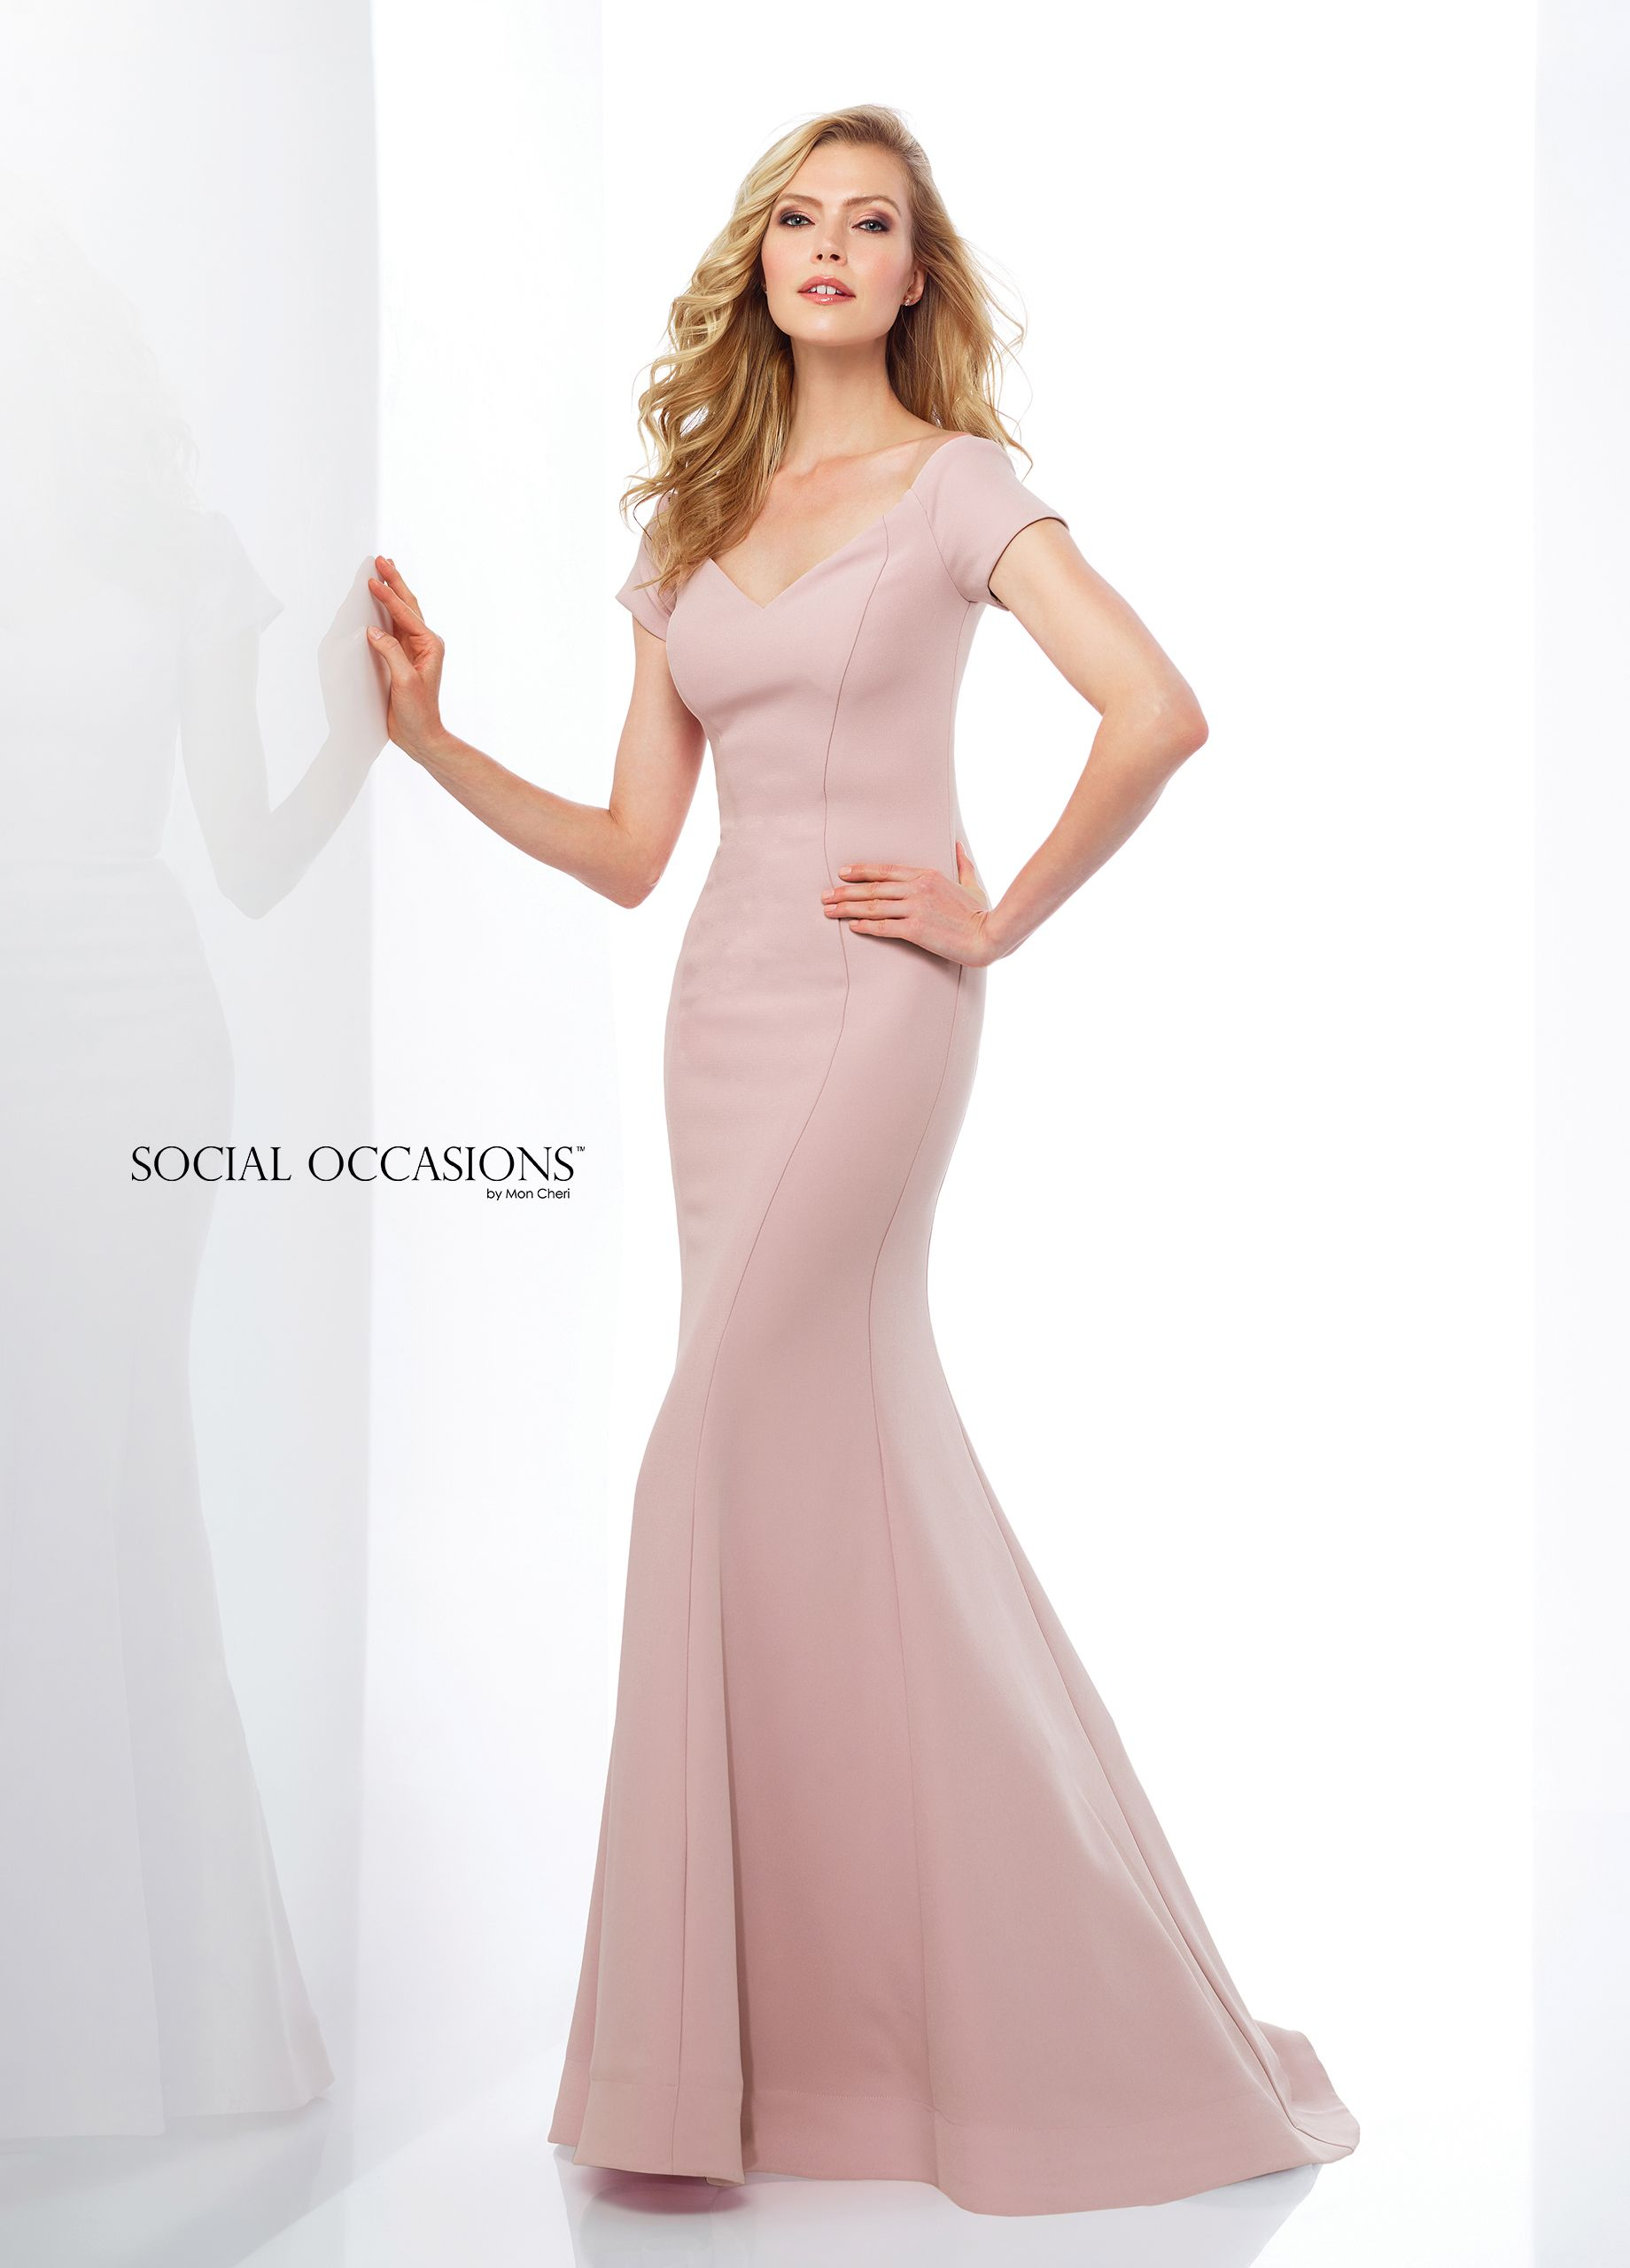 118879 | Kacey\'s top mother of bride dresses for her beautiful hot ...